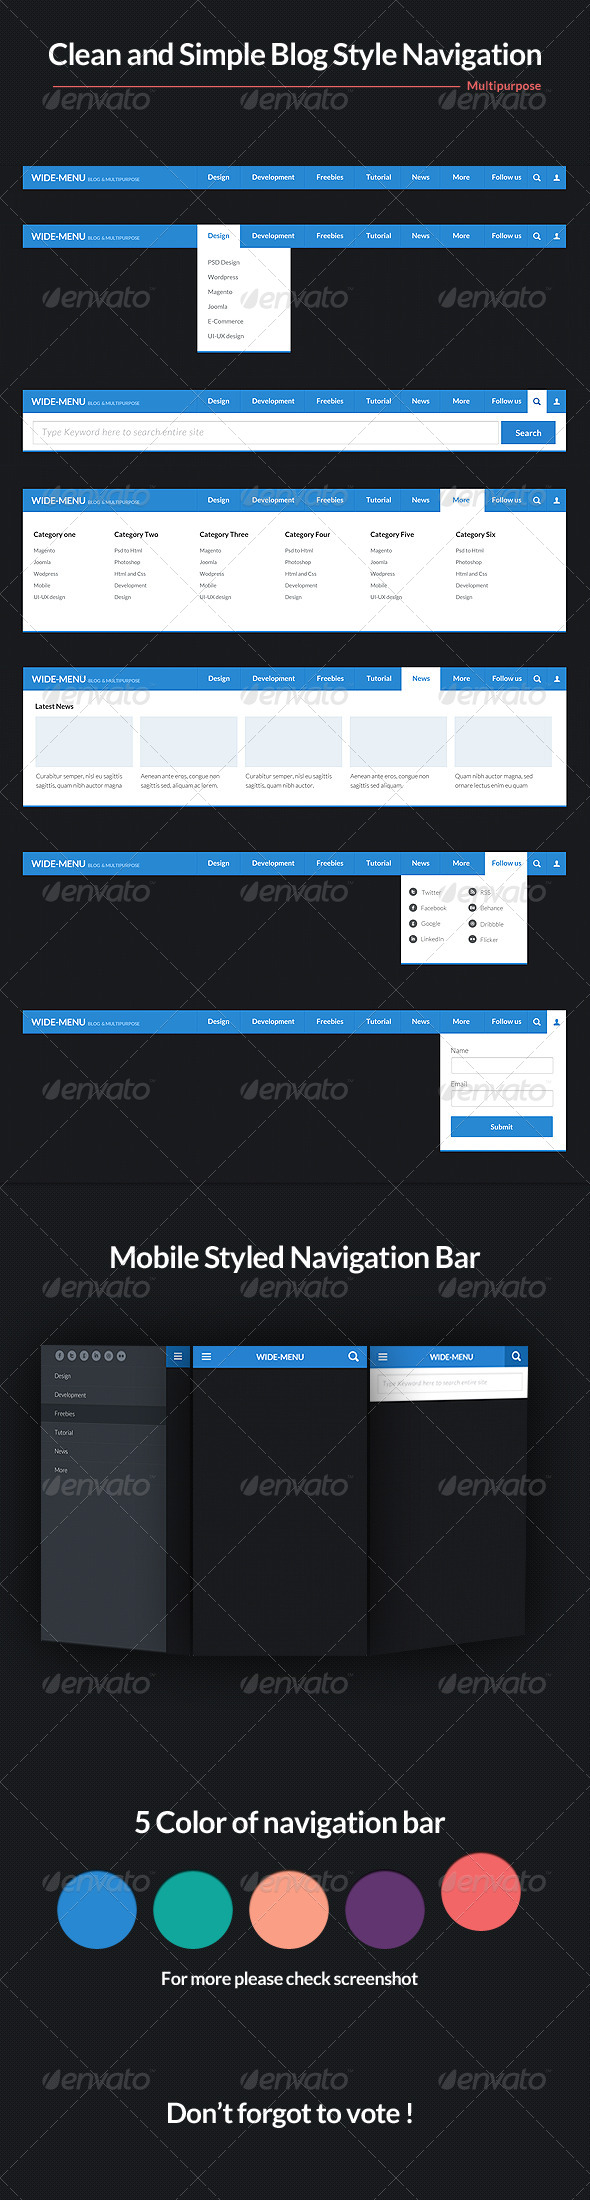 Wide Blog Style Navigation Bar Psd - Navigation Bars Web Elements